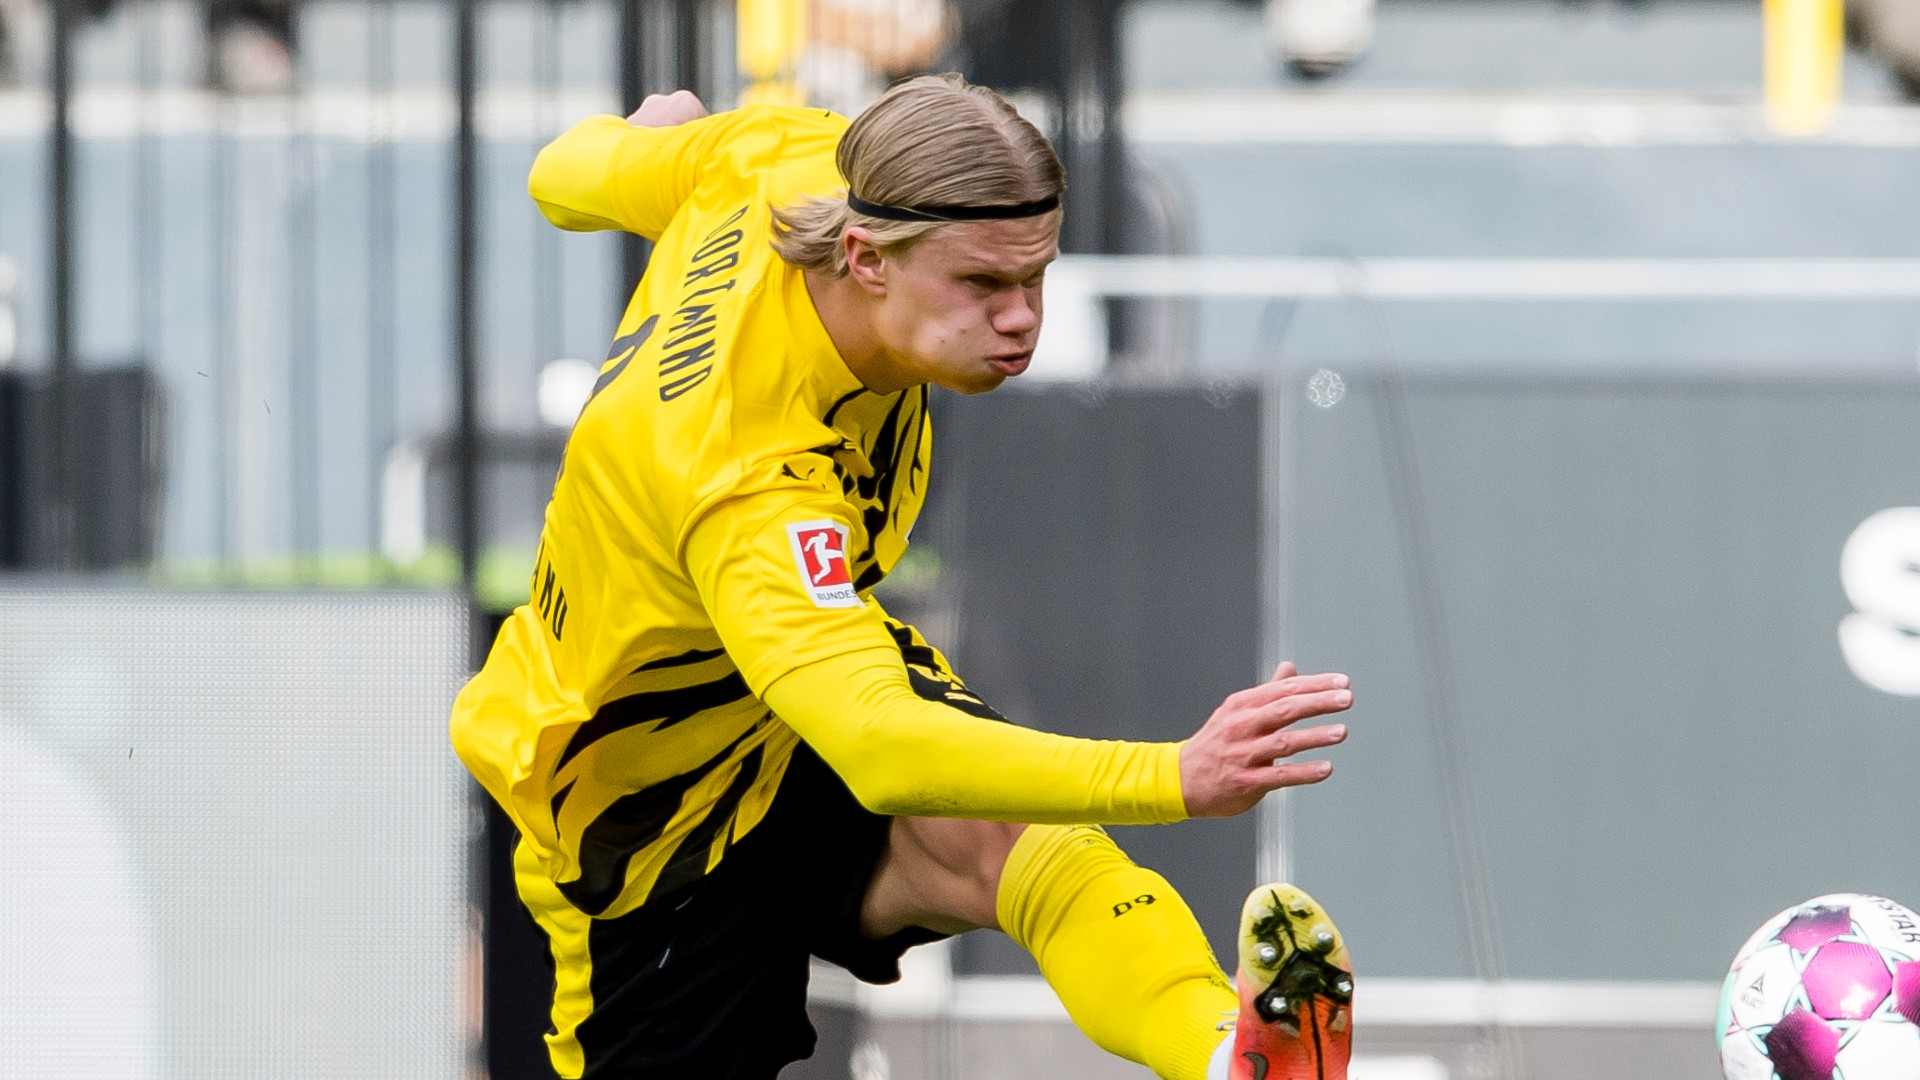 Guardiola's next number nine? Haaland set to audition for football's toughest gig